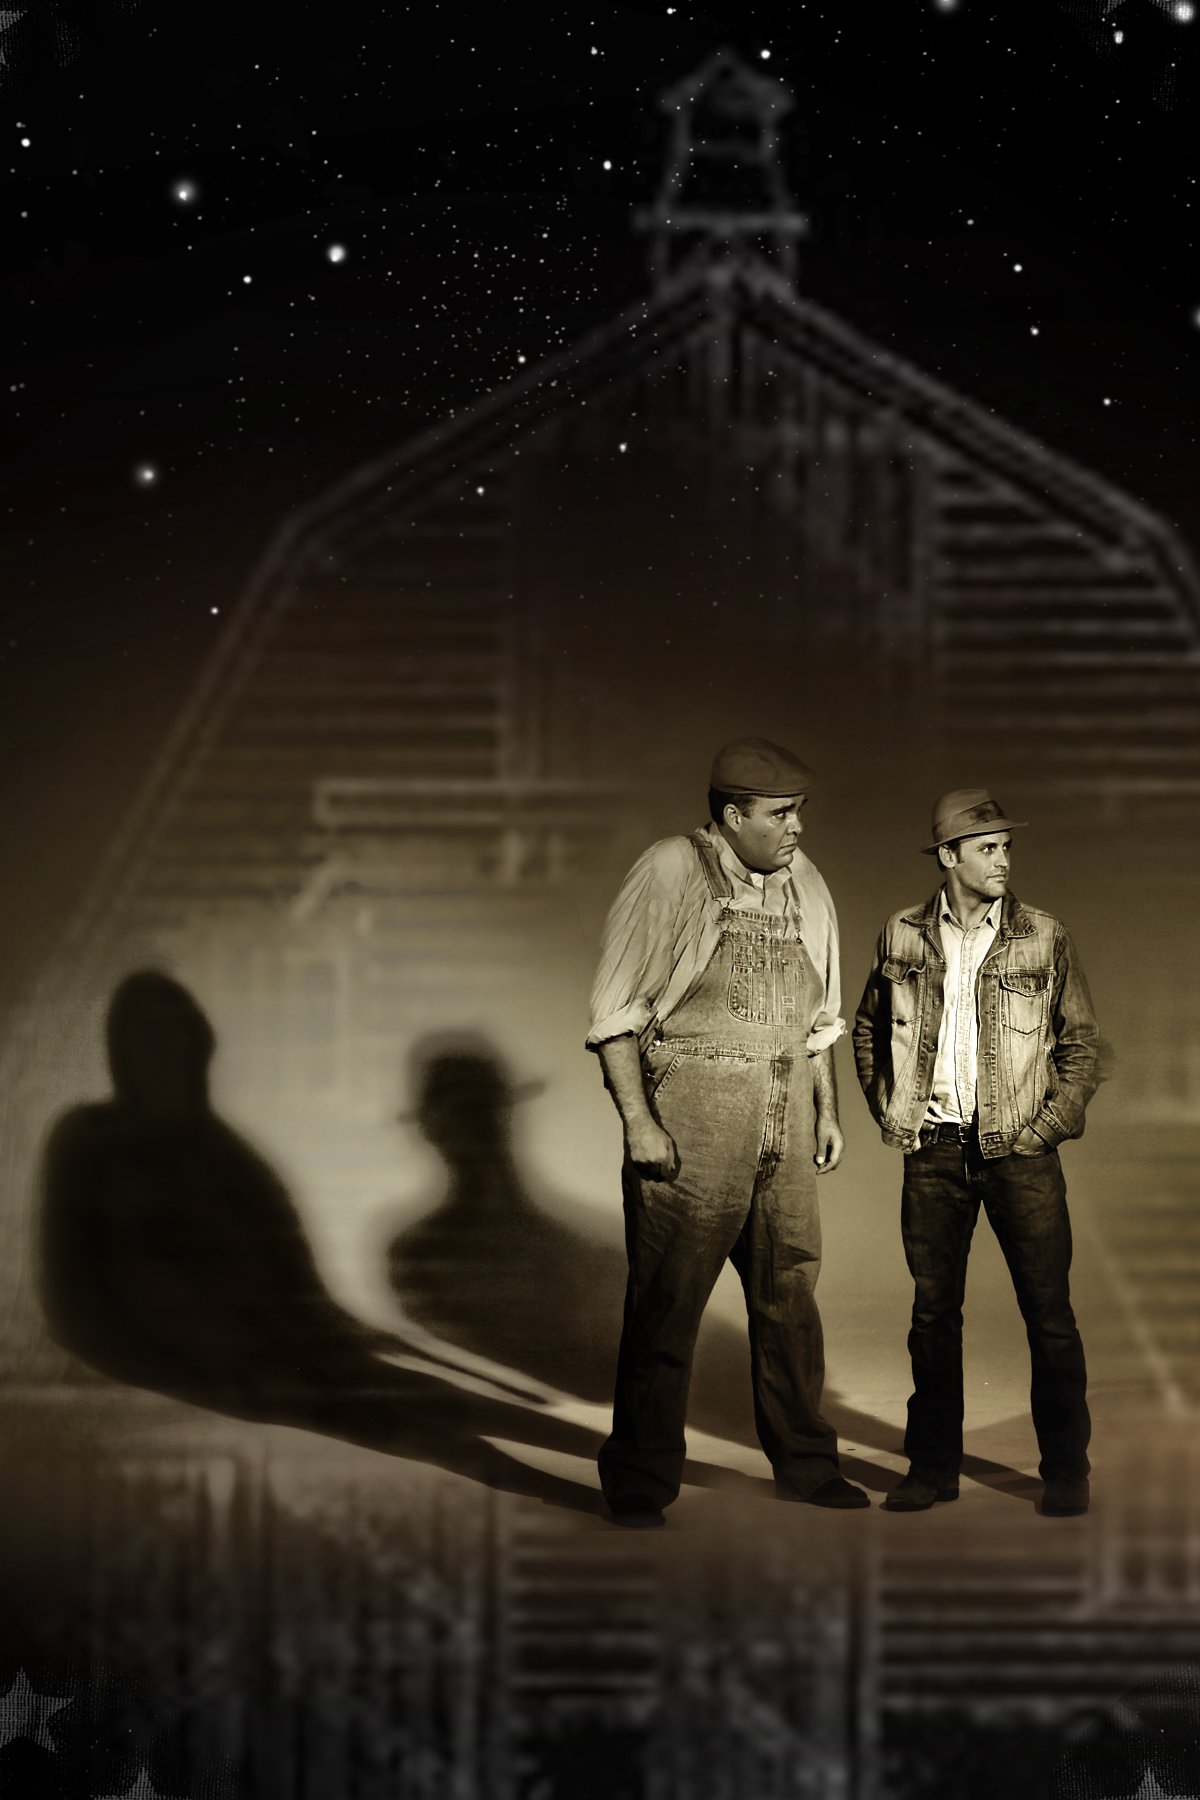 Of Mice and Men - Paulo de Sousa and Ronnie Gunter - The Barn